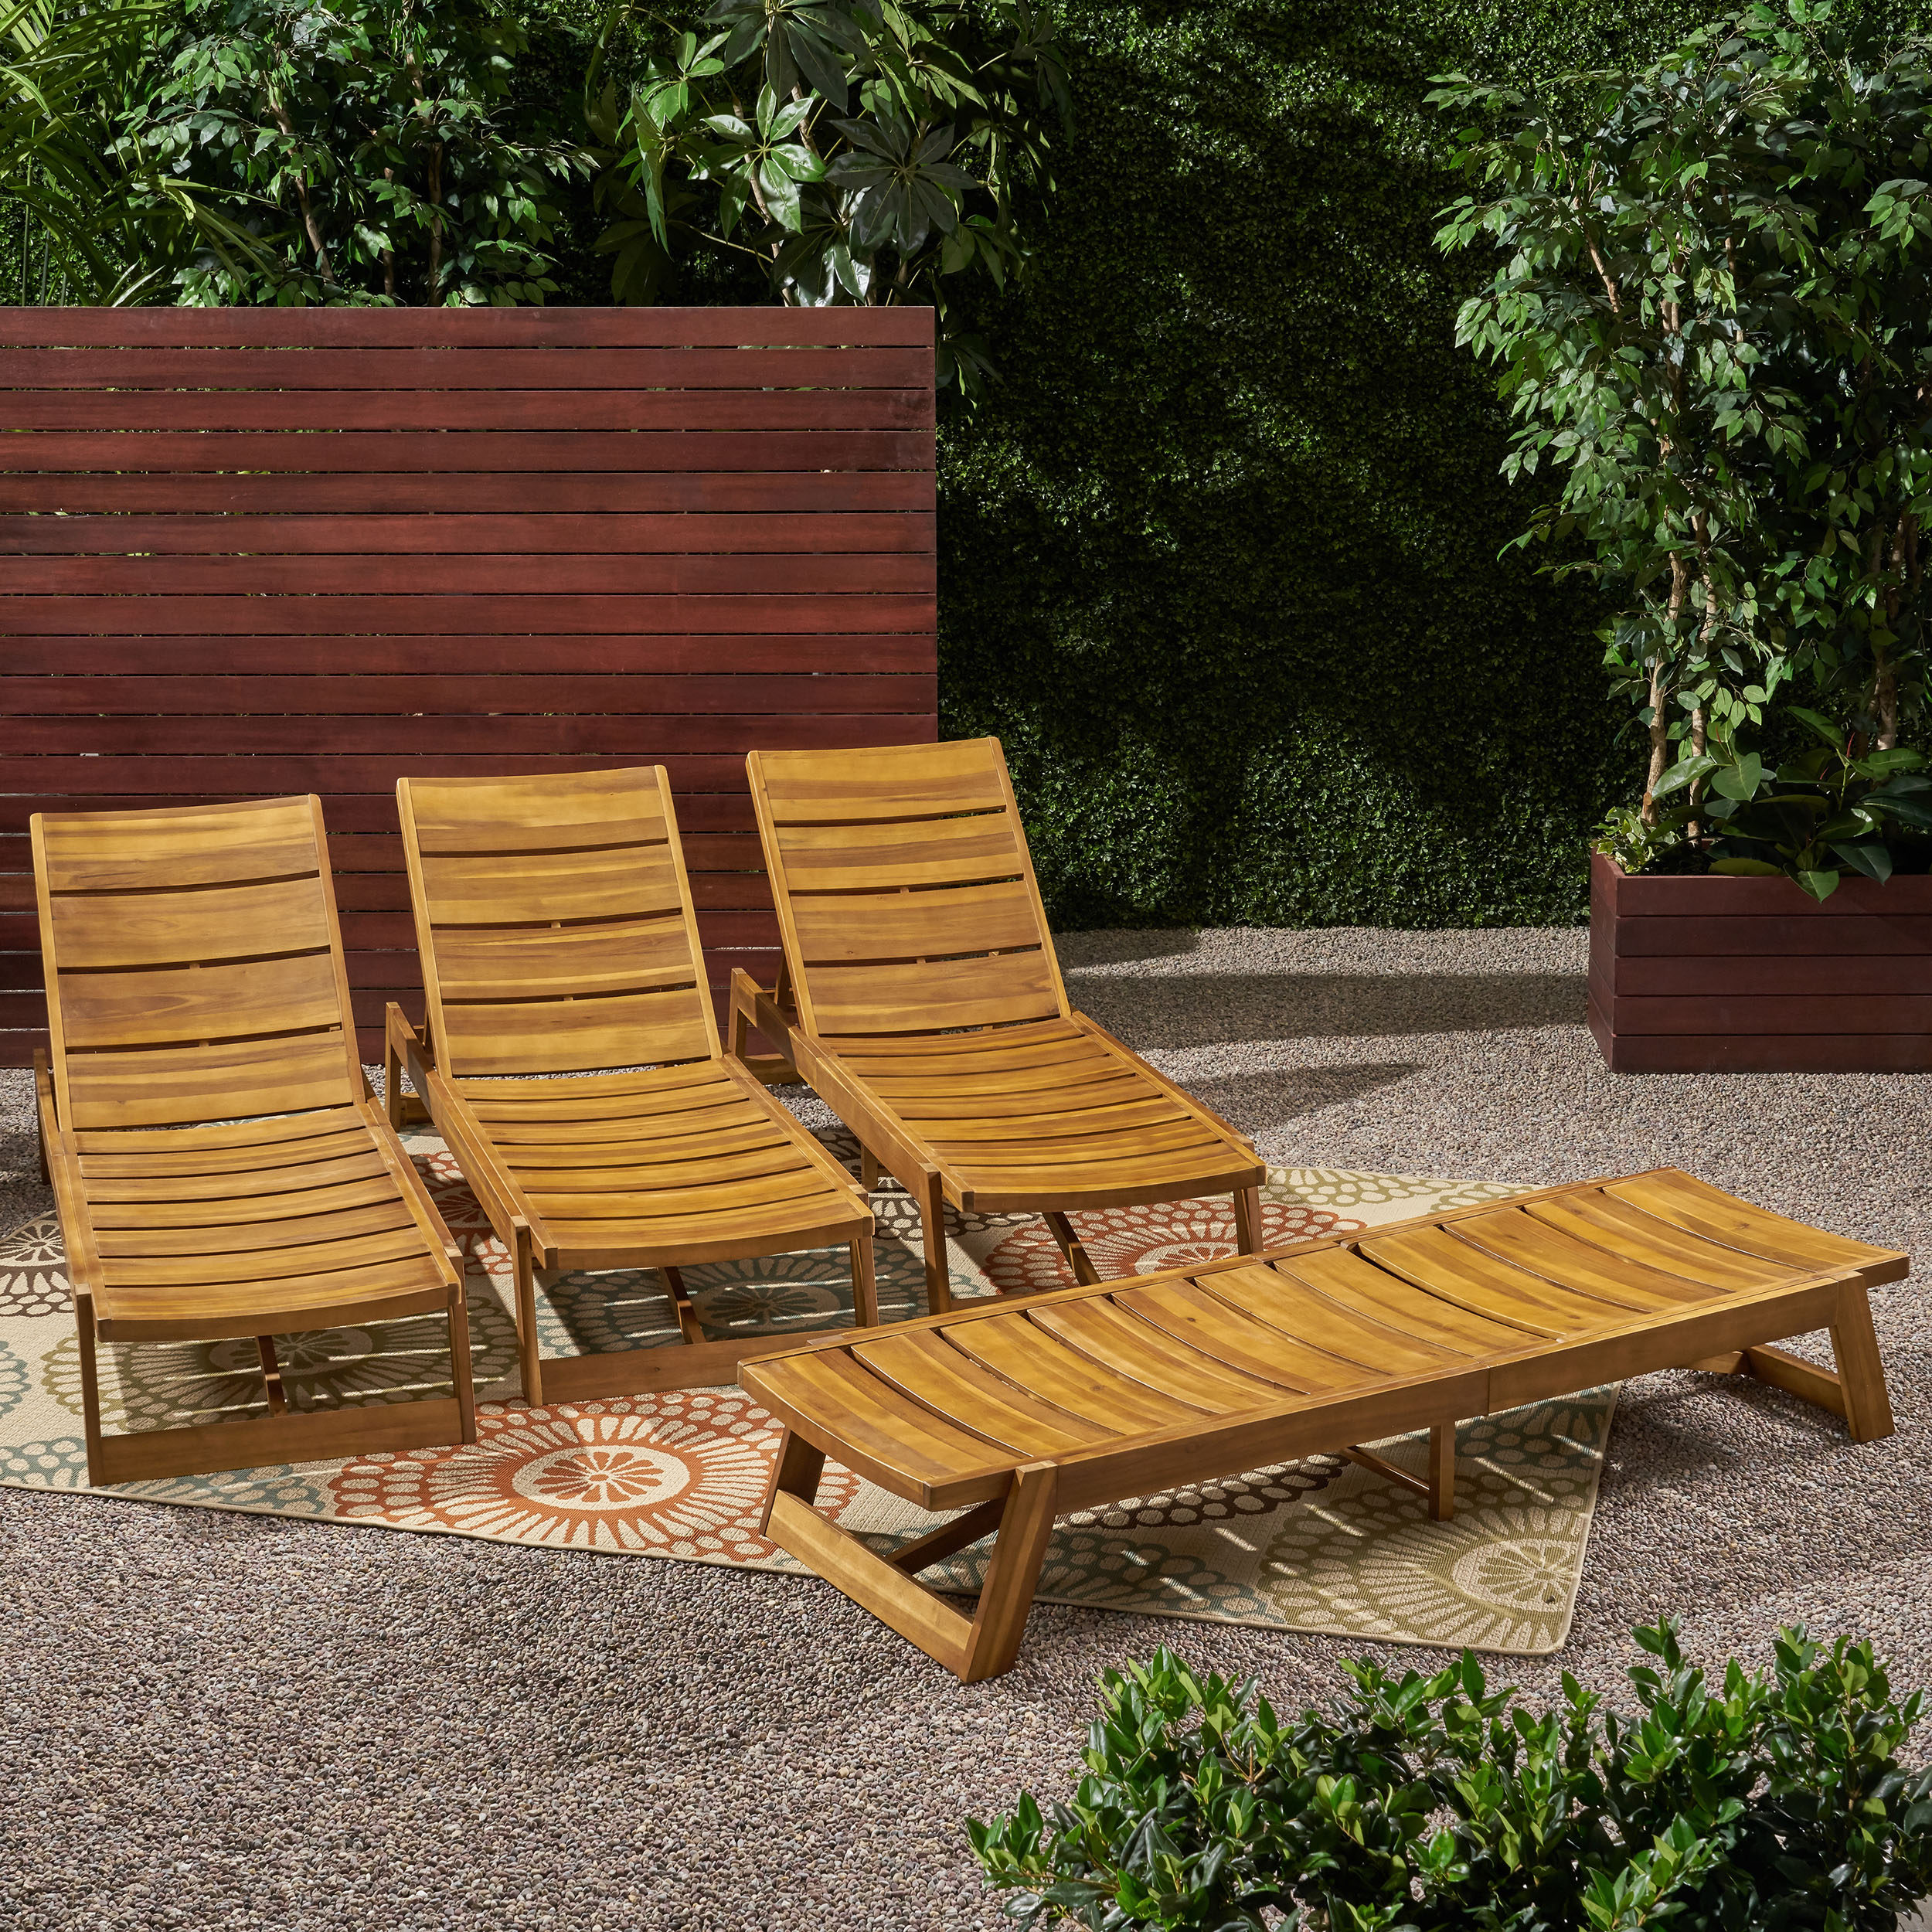 Groovy Details About Melissa Outdoor Acacia Wood Chaise Lounge Set Of 4 Lamtechconsult Wood Chair Design Ideas Lamtechconsultcom